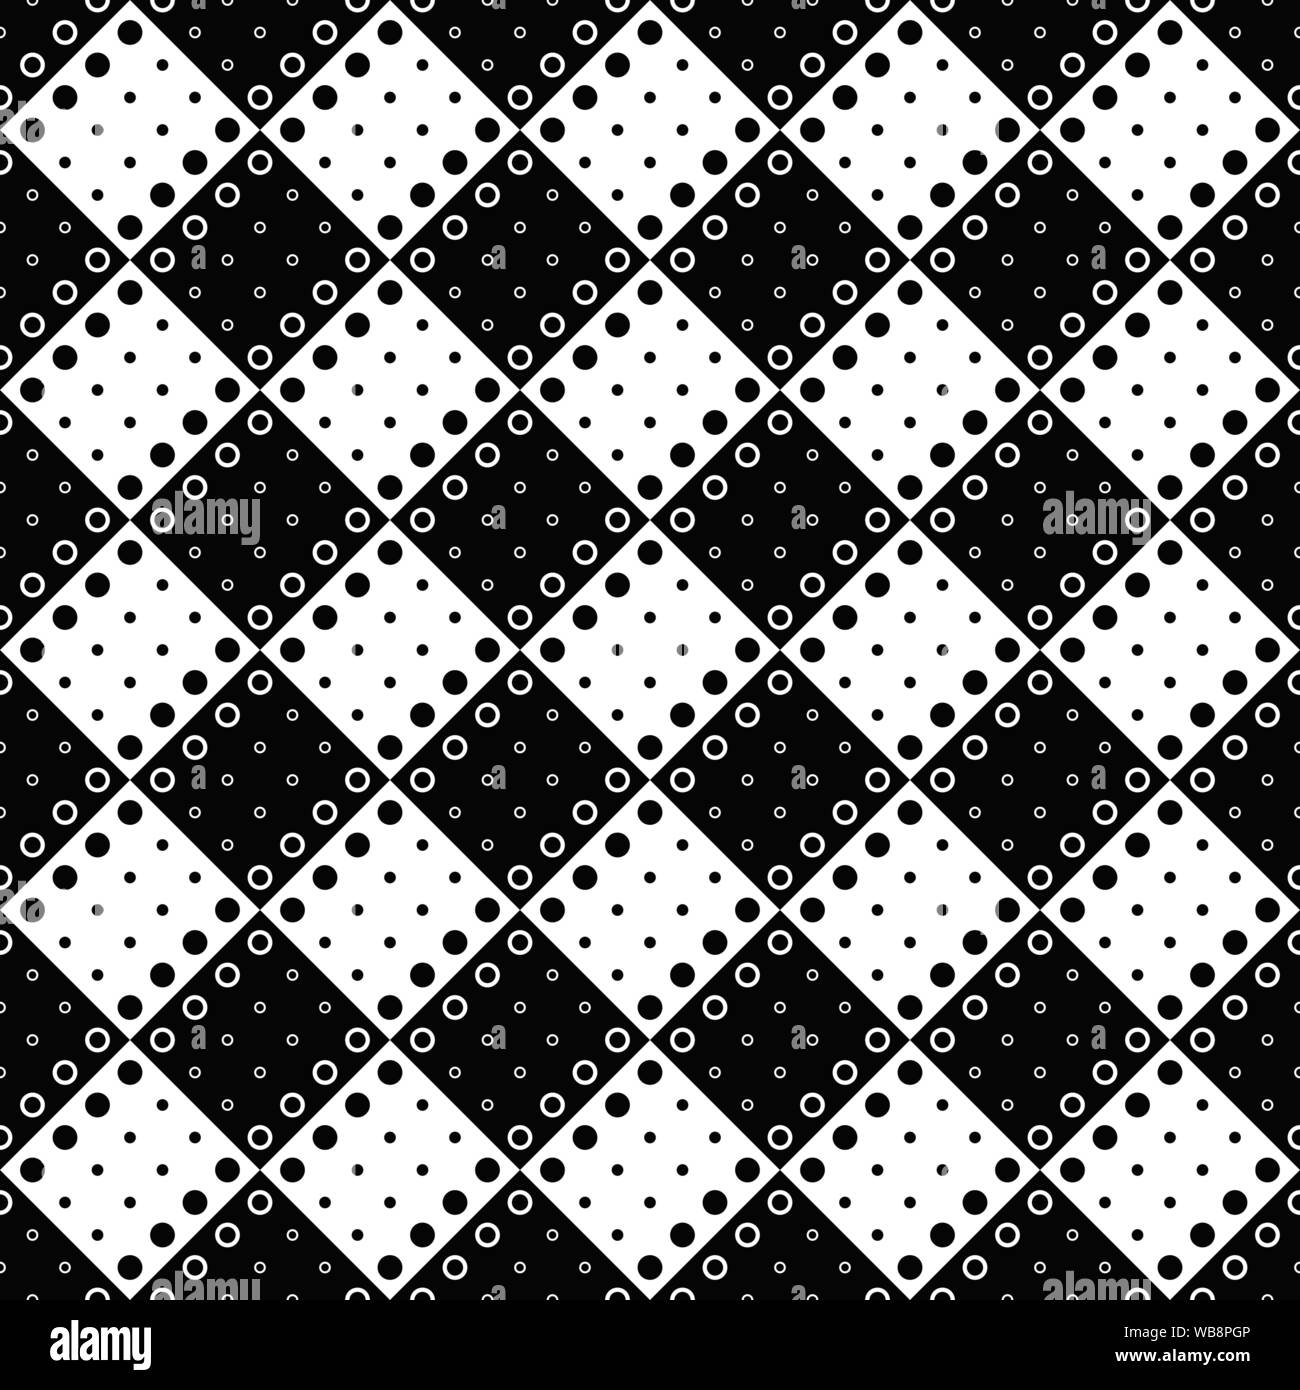 Circle pattern background - black white vector graphic from dots and circles Stock Vector